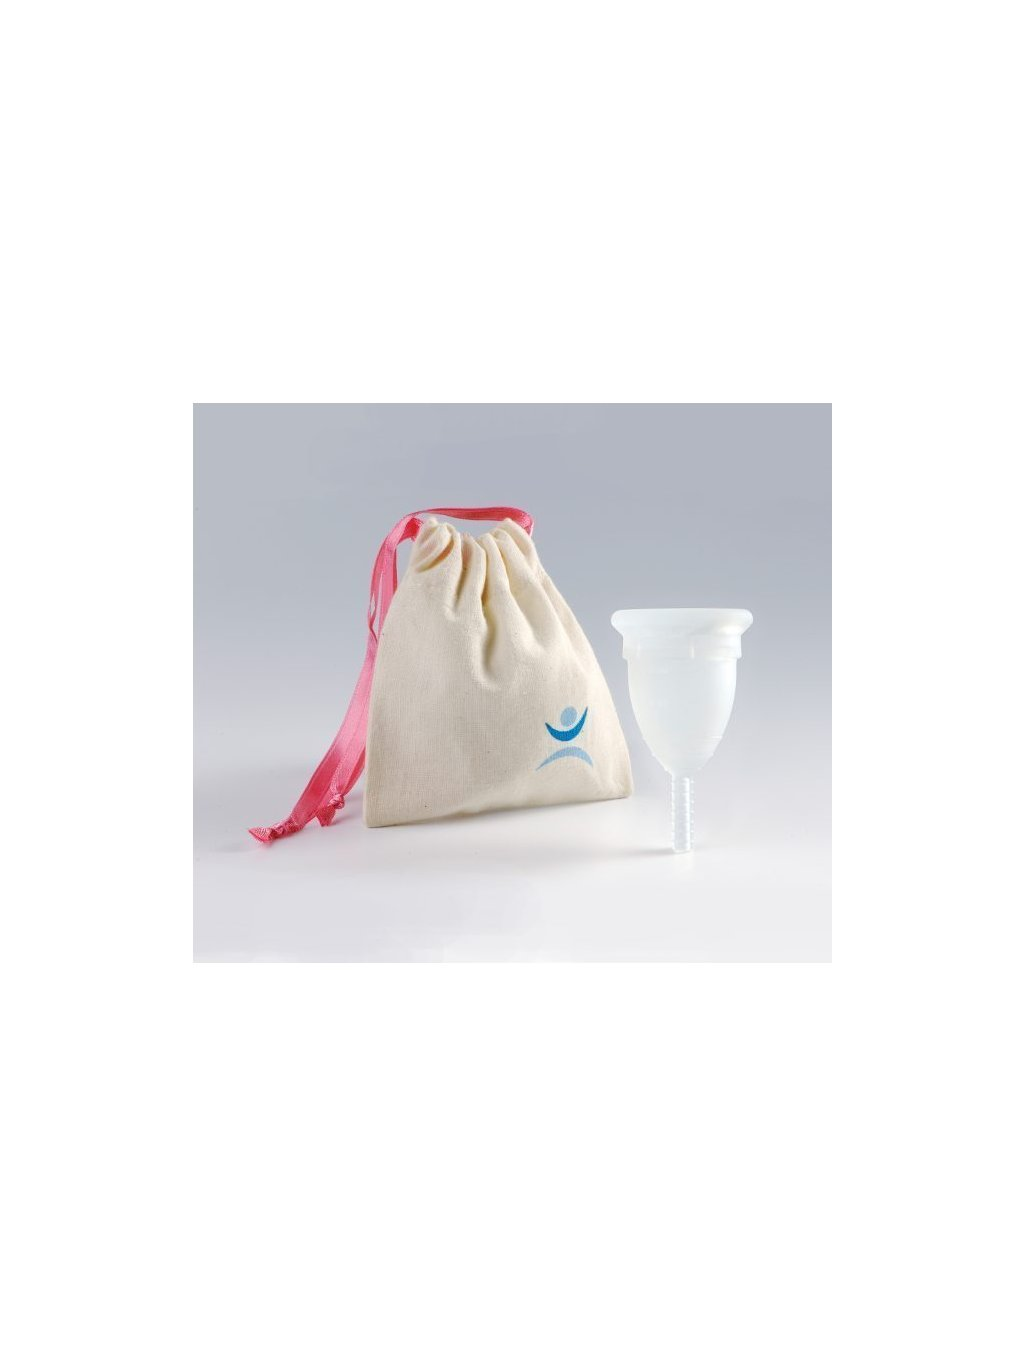 cup with bag A